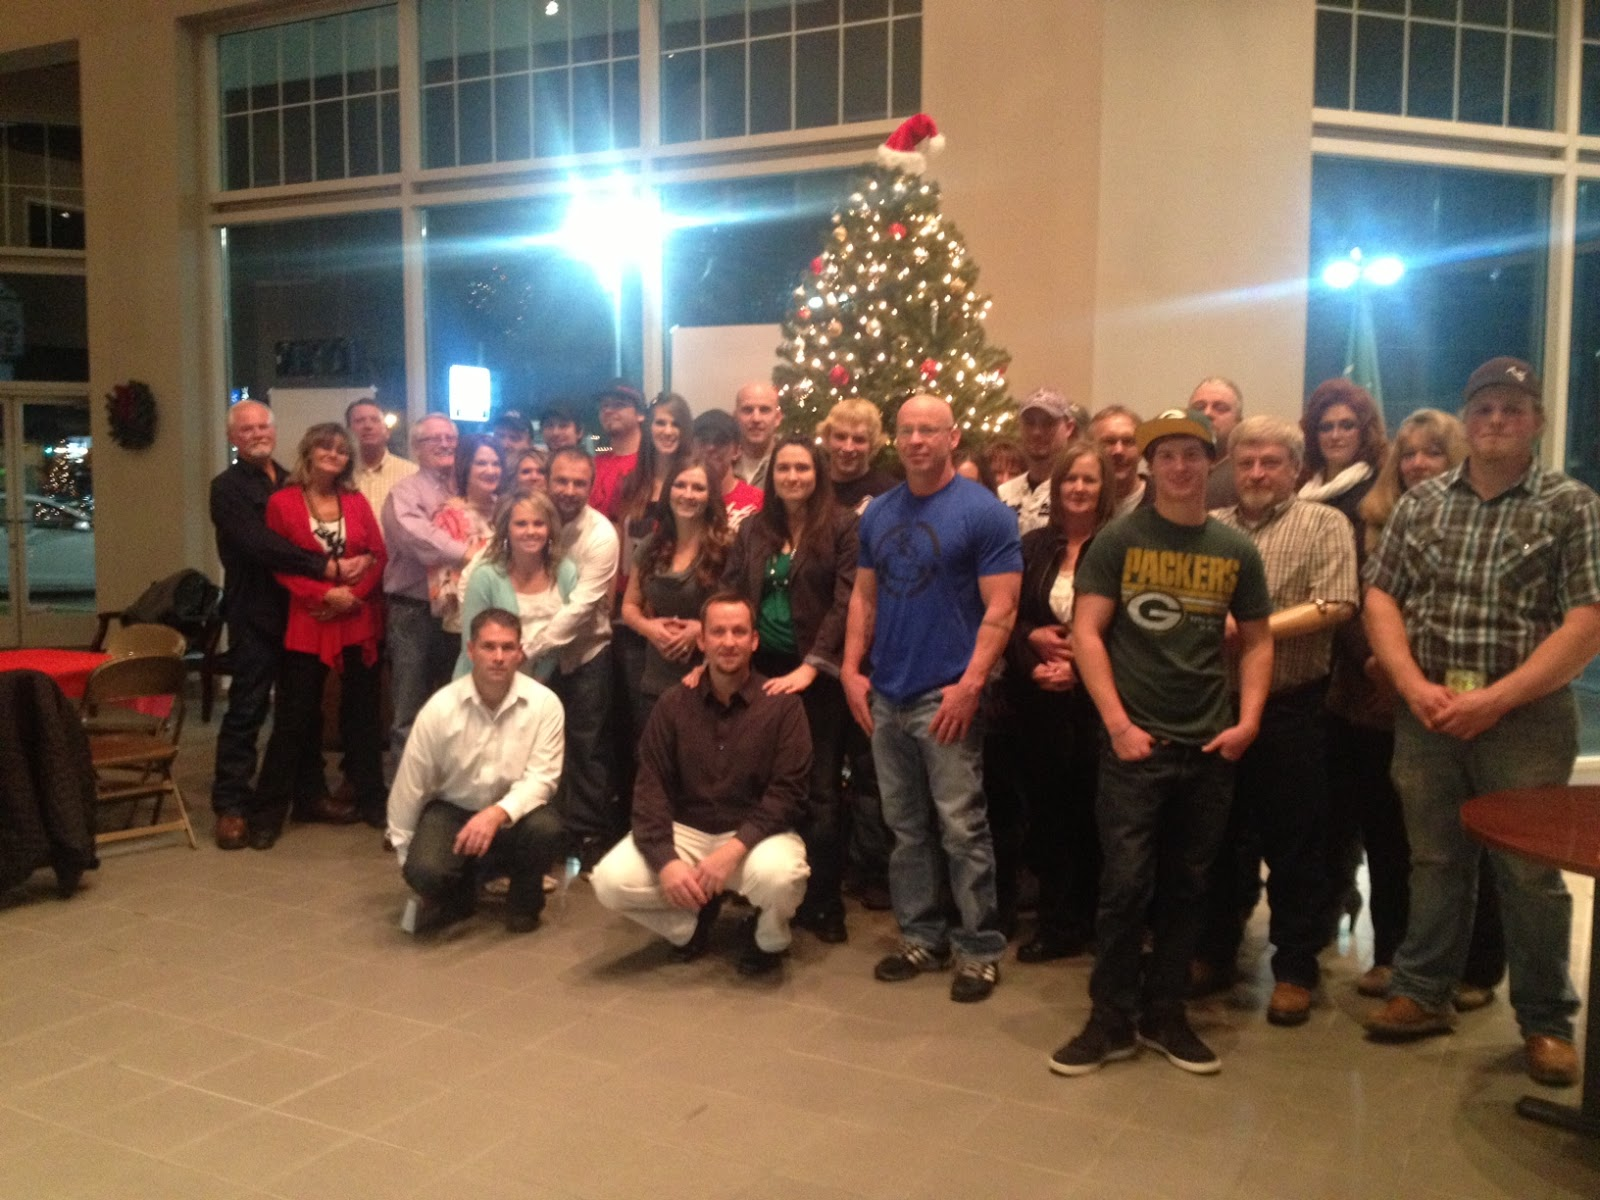 Labrum Ford/Chevrolet: Labrum Chevrolet/Buick/Ford store Christmas